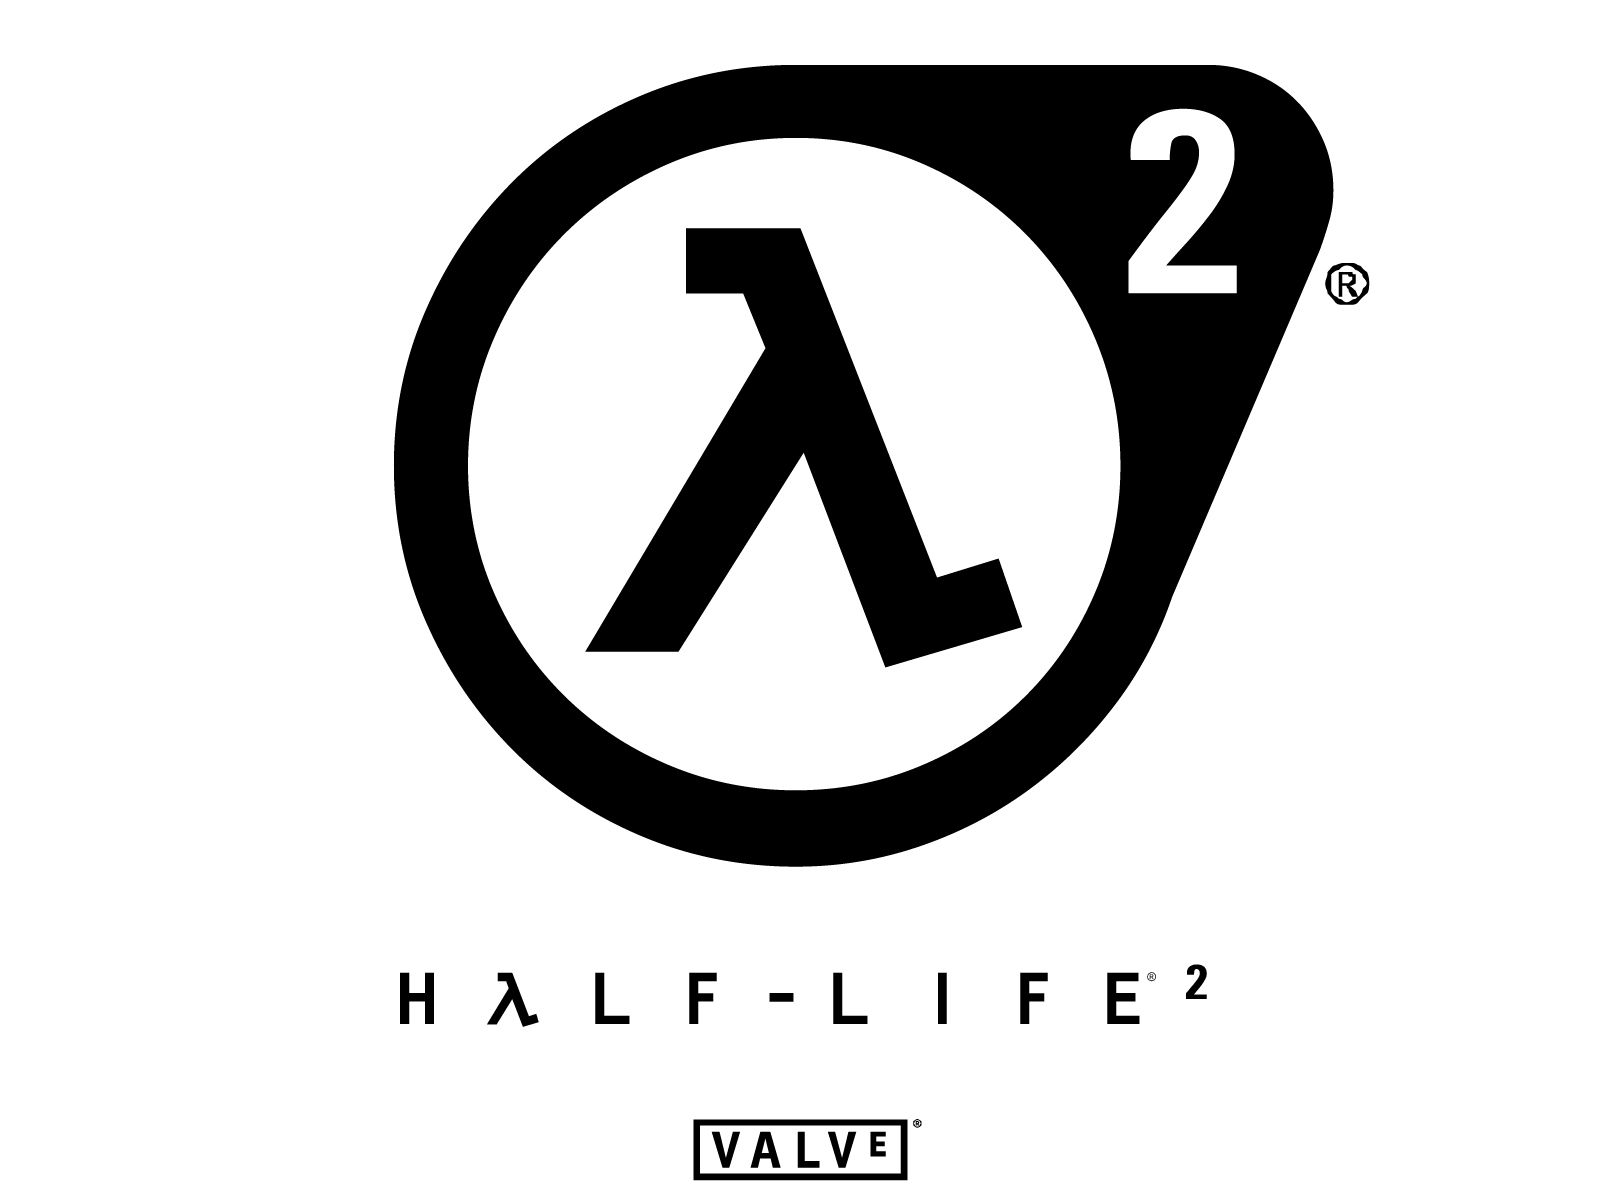 valve corporation analysis Valve corporation is a software developer located in bellevue, washington in the united states thre are 2 additional code signing certificates issued to this publisher.